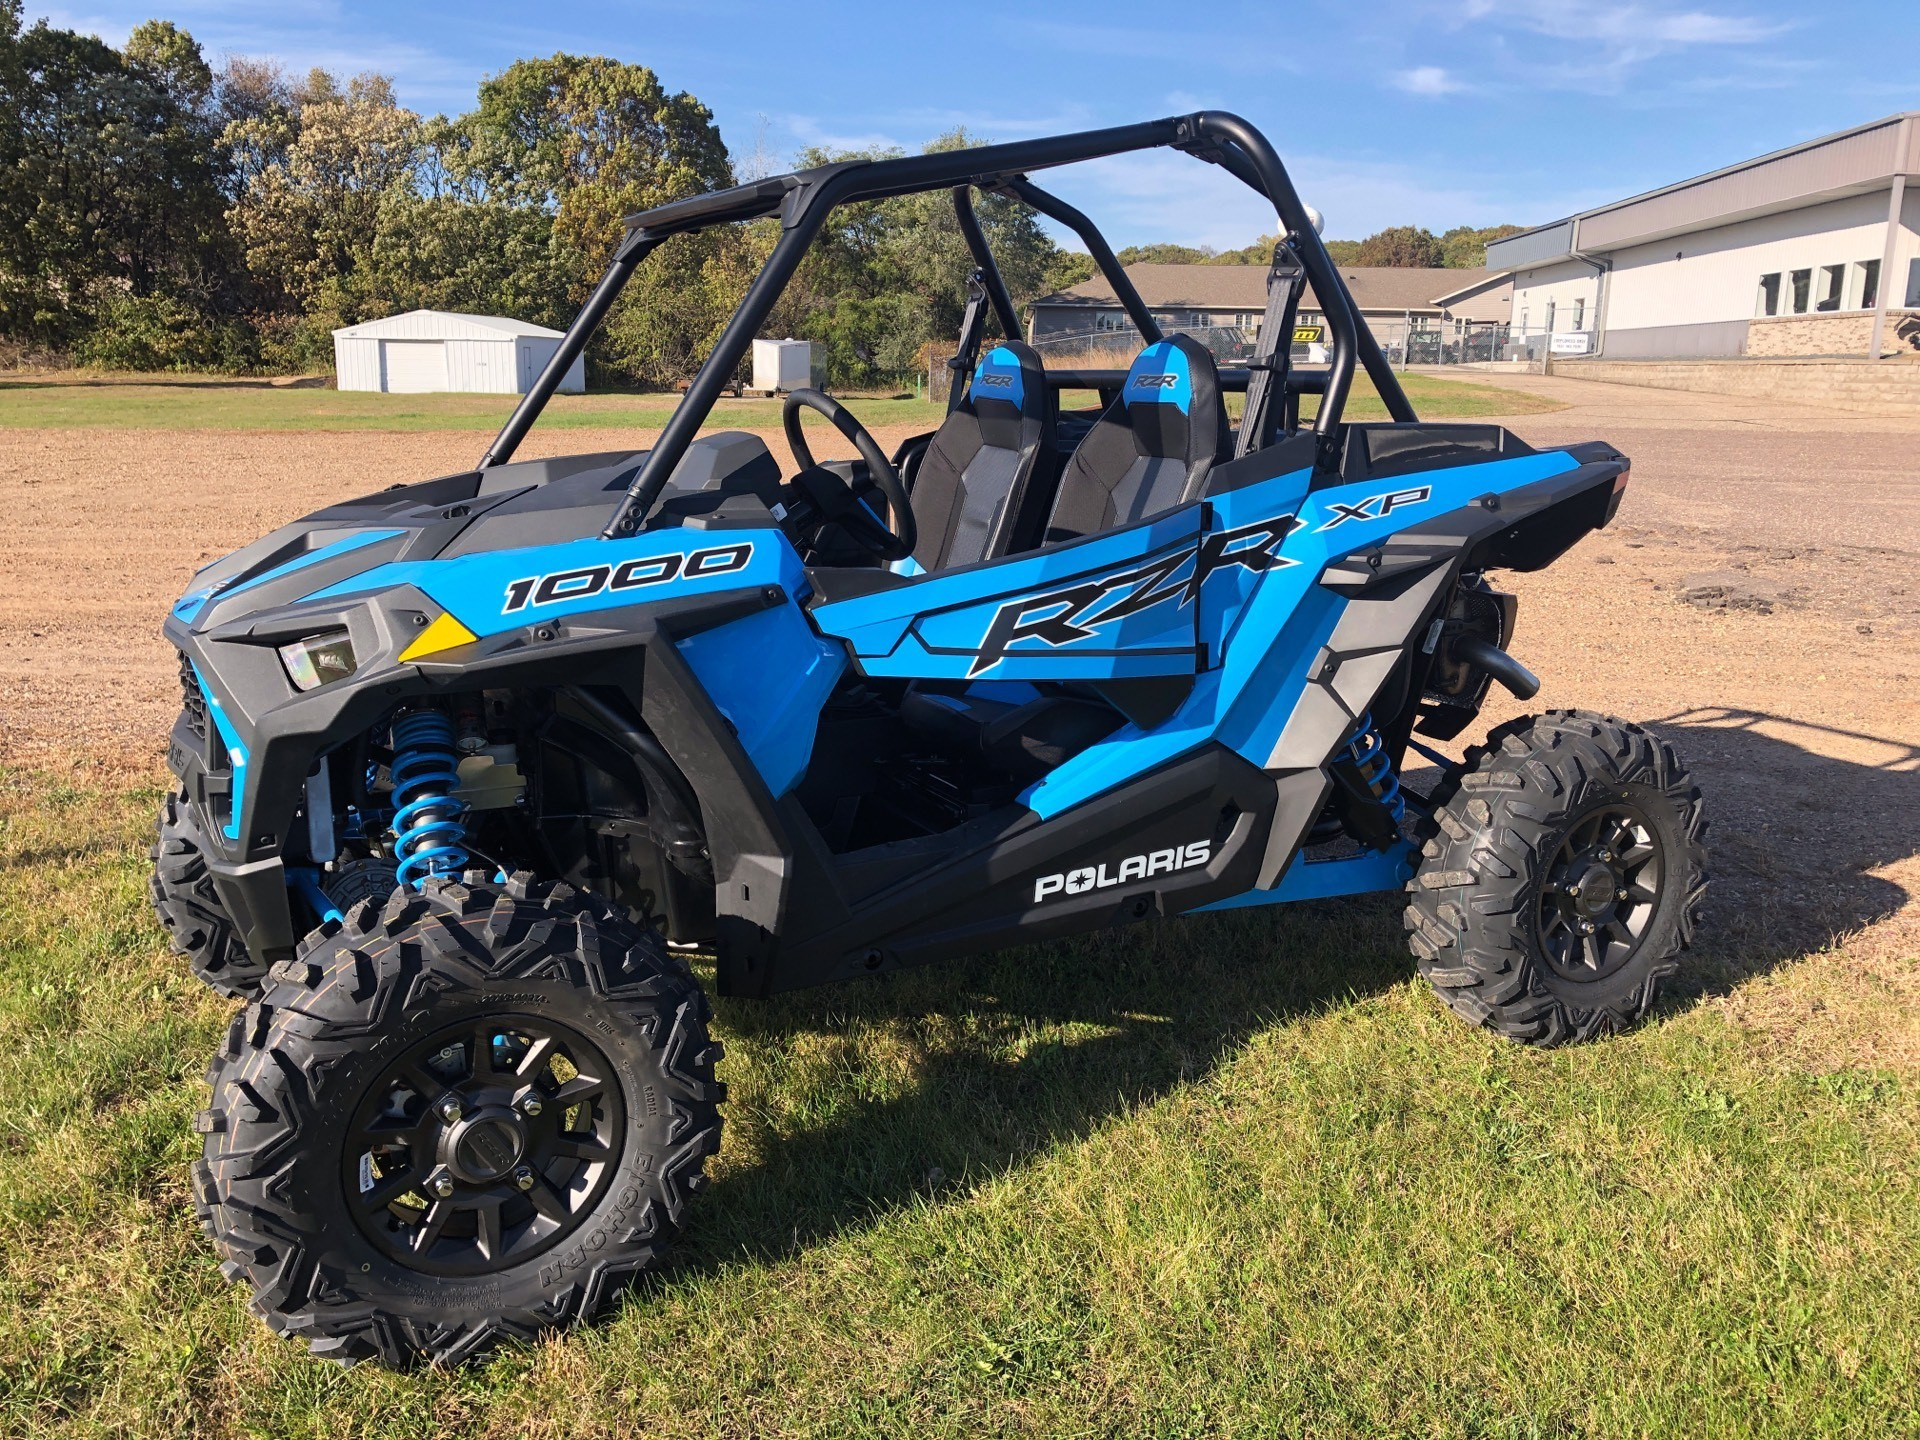 2020 Polaris RZR XP 1000 in Altoona, Wisconsin - Photo 1